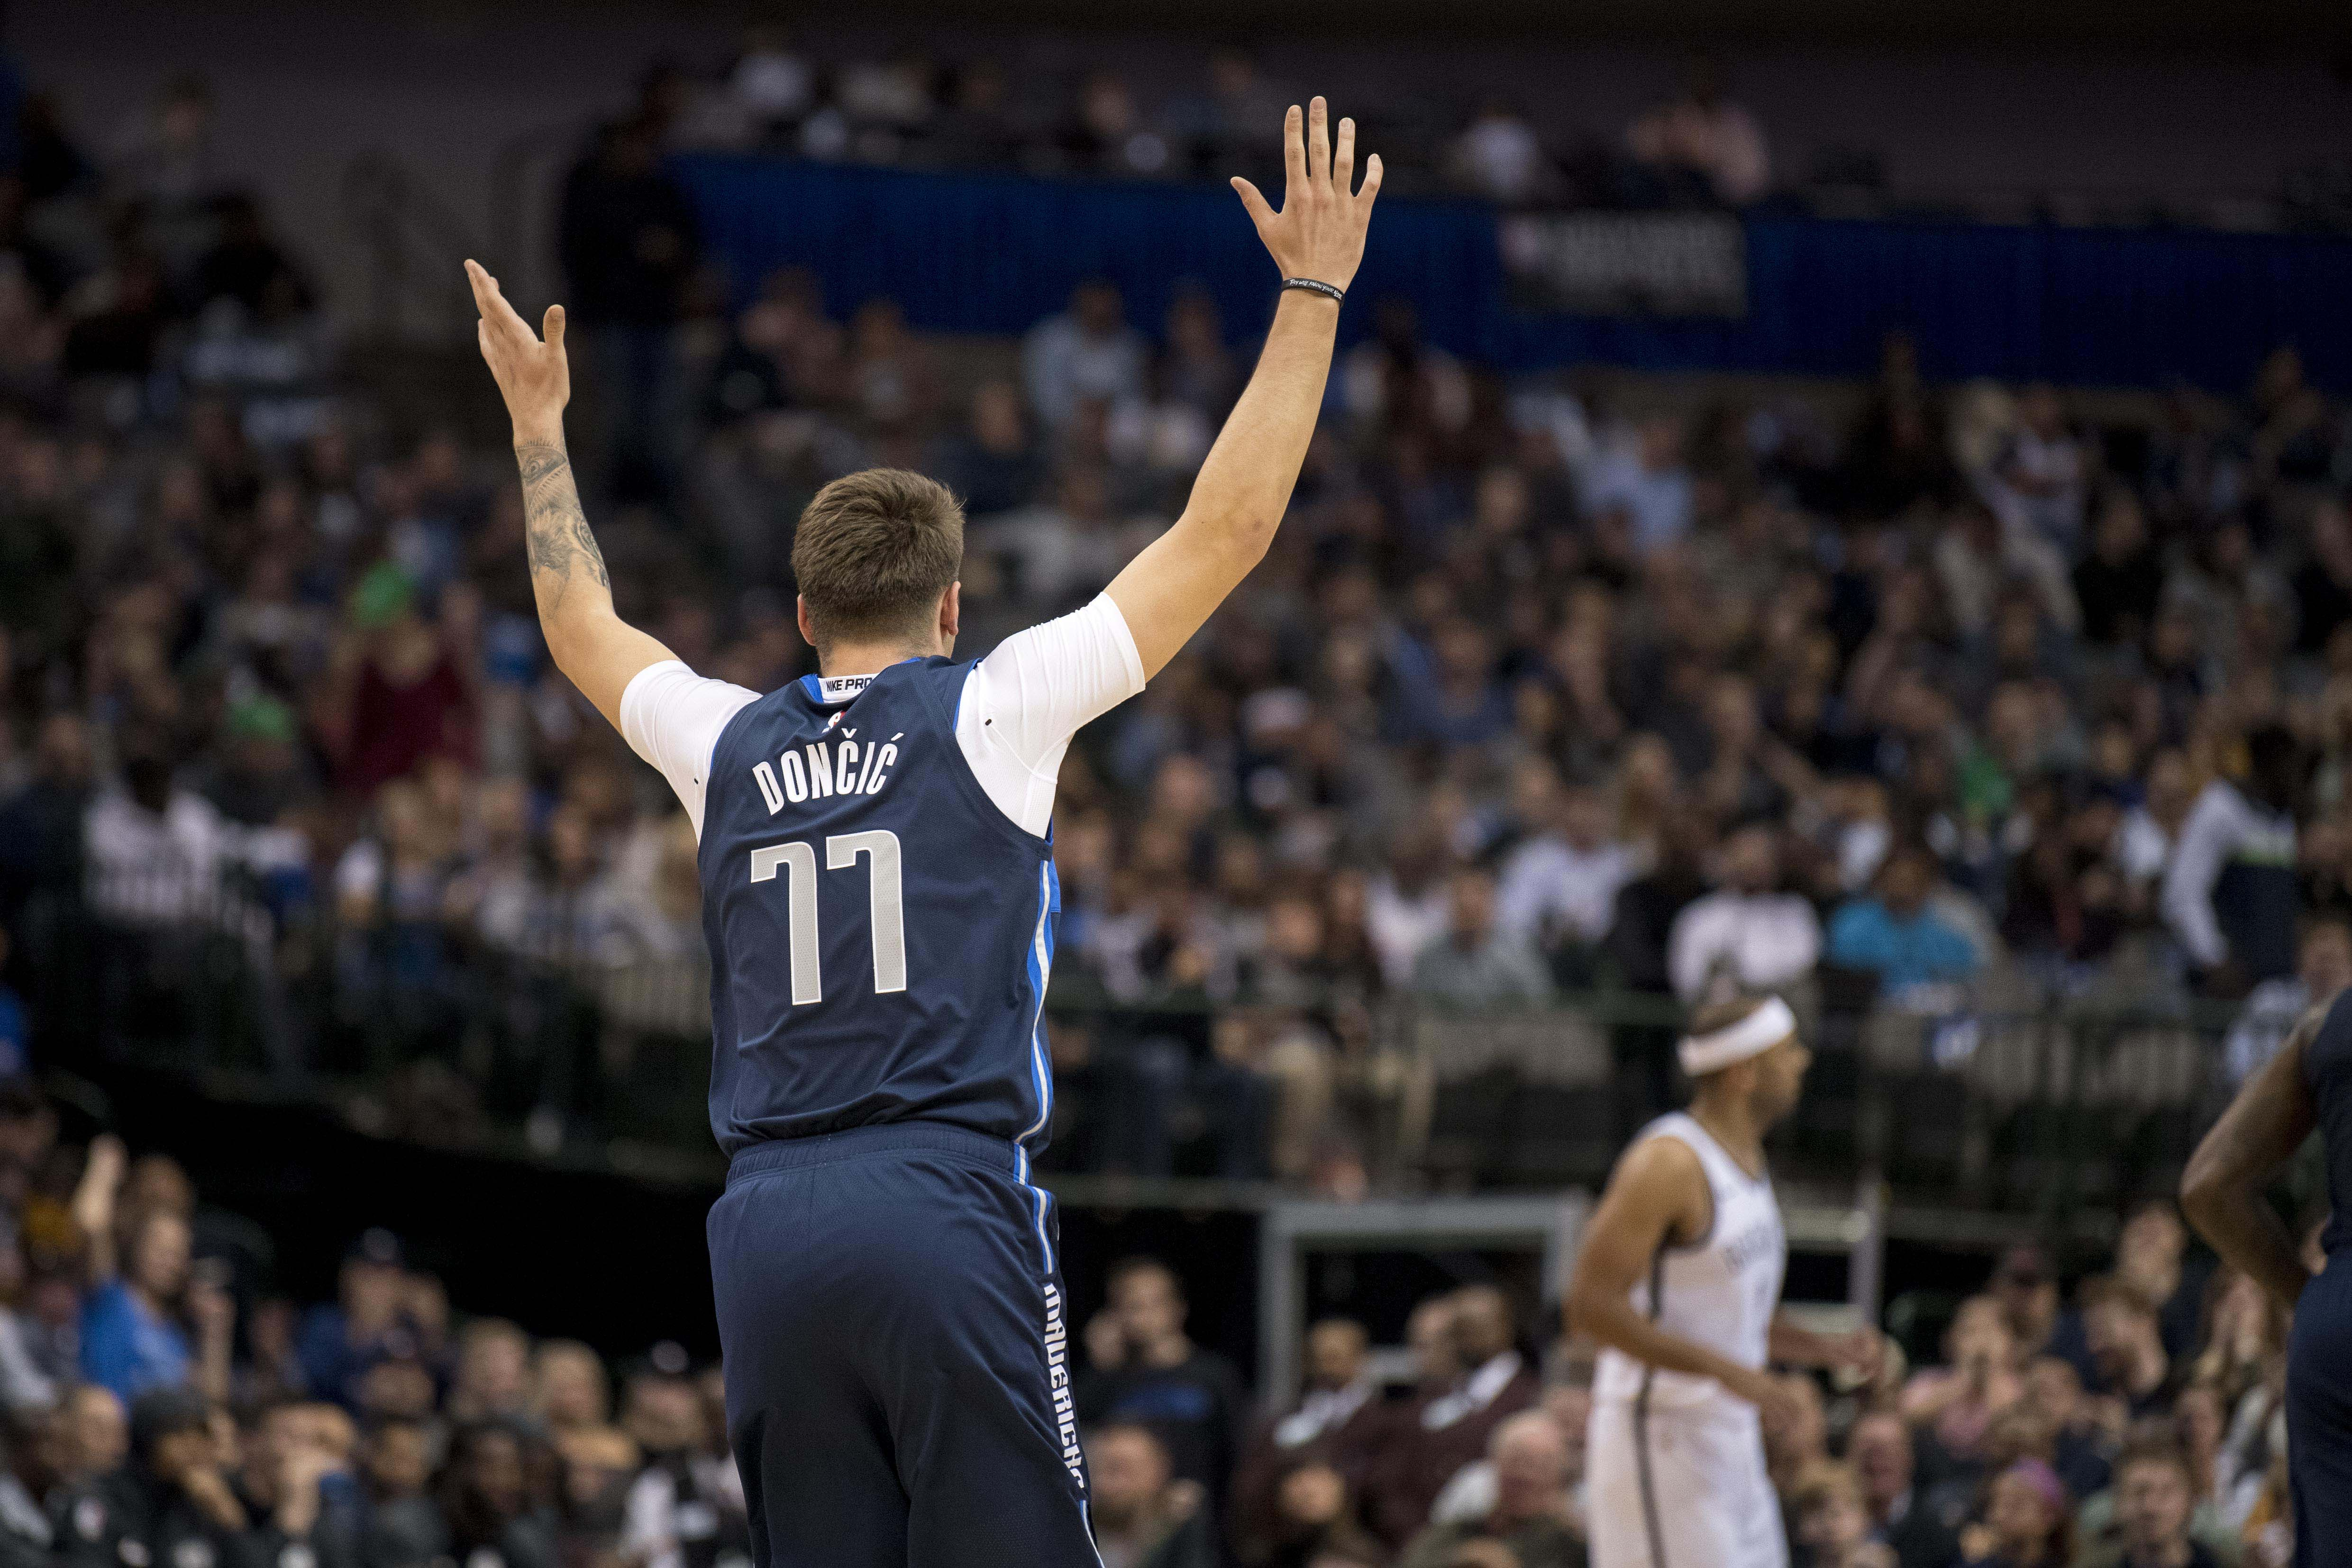 mavs rookie luka doncic ranked near top of usa todays - HD4962×3308